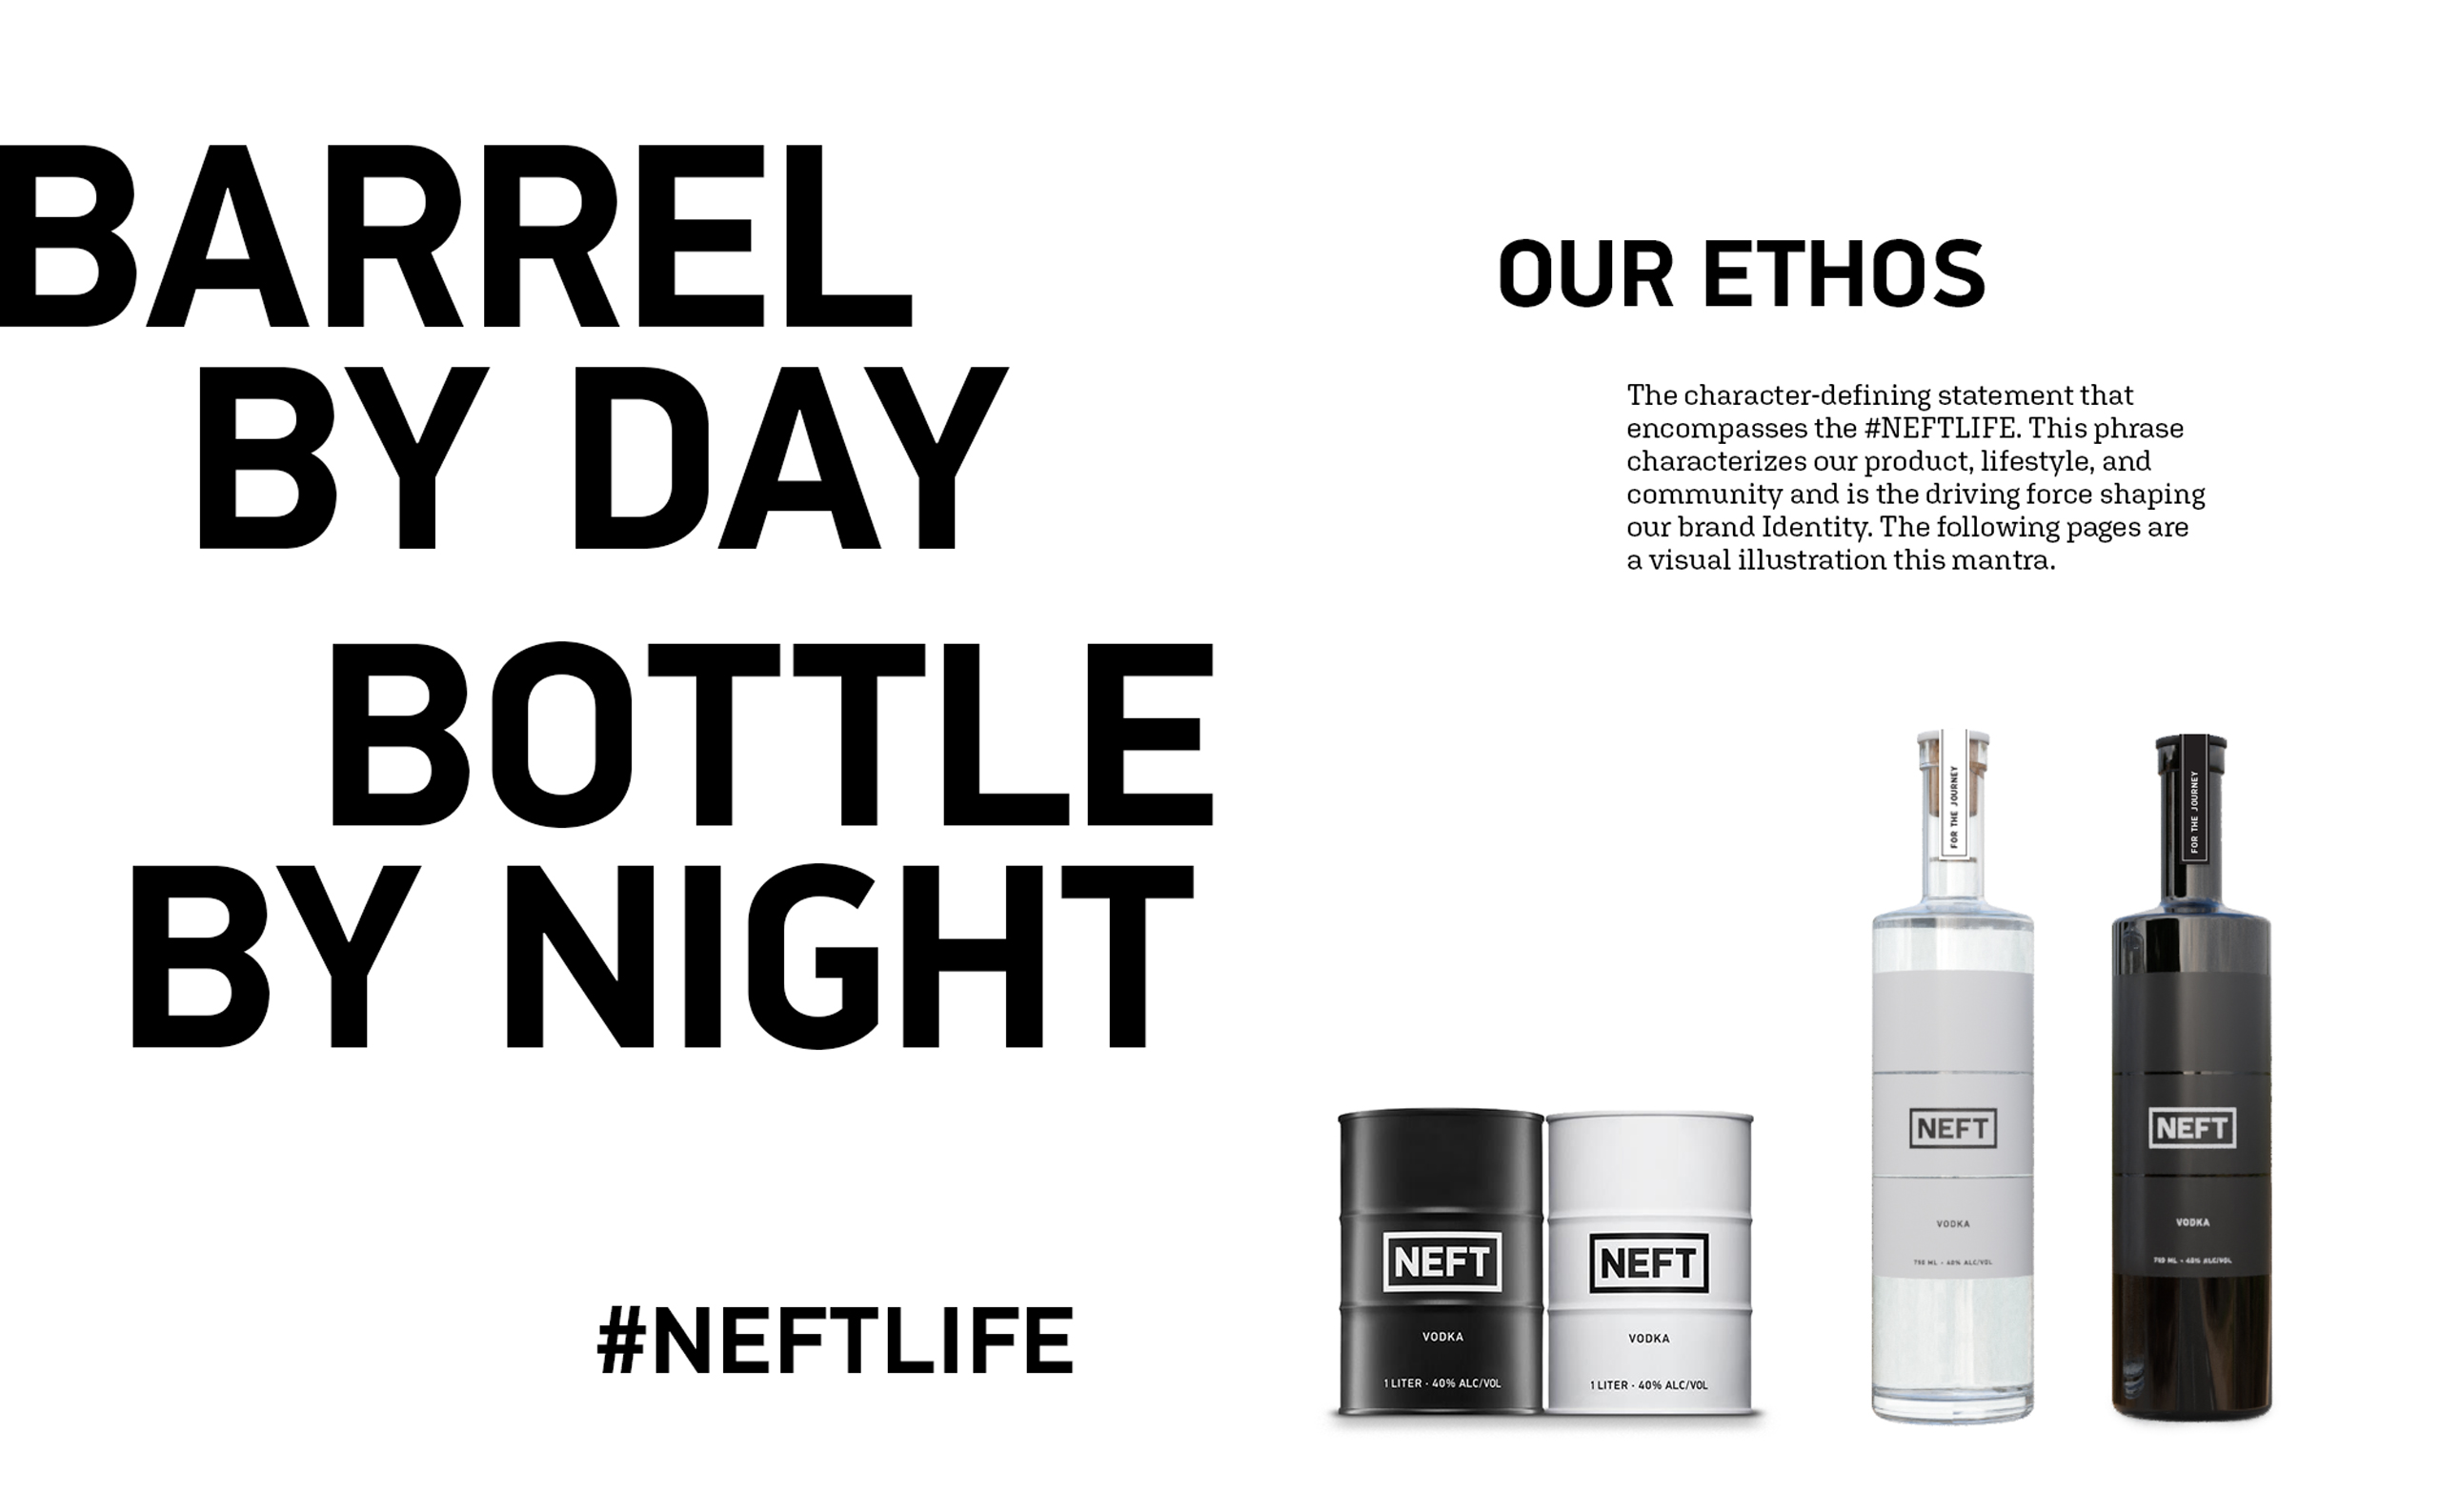 The NEFT brand and ethos showing black and white Vodka bottles and a summary of the ethos